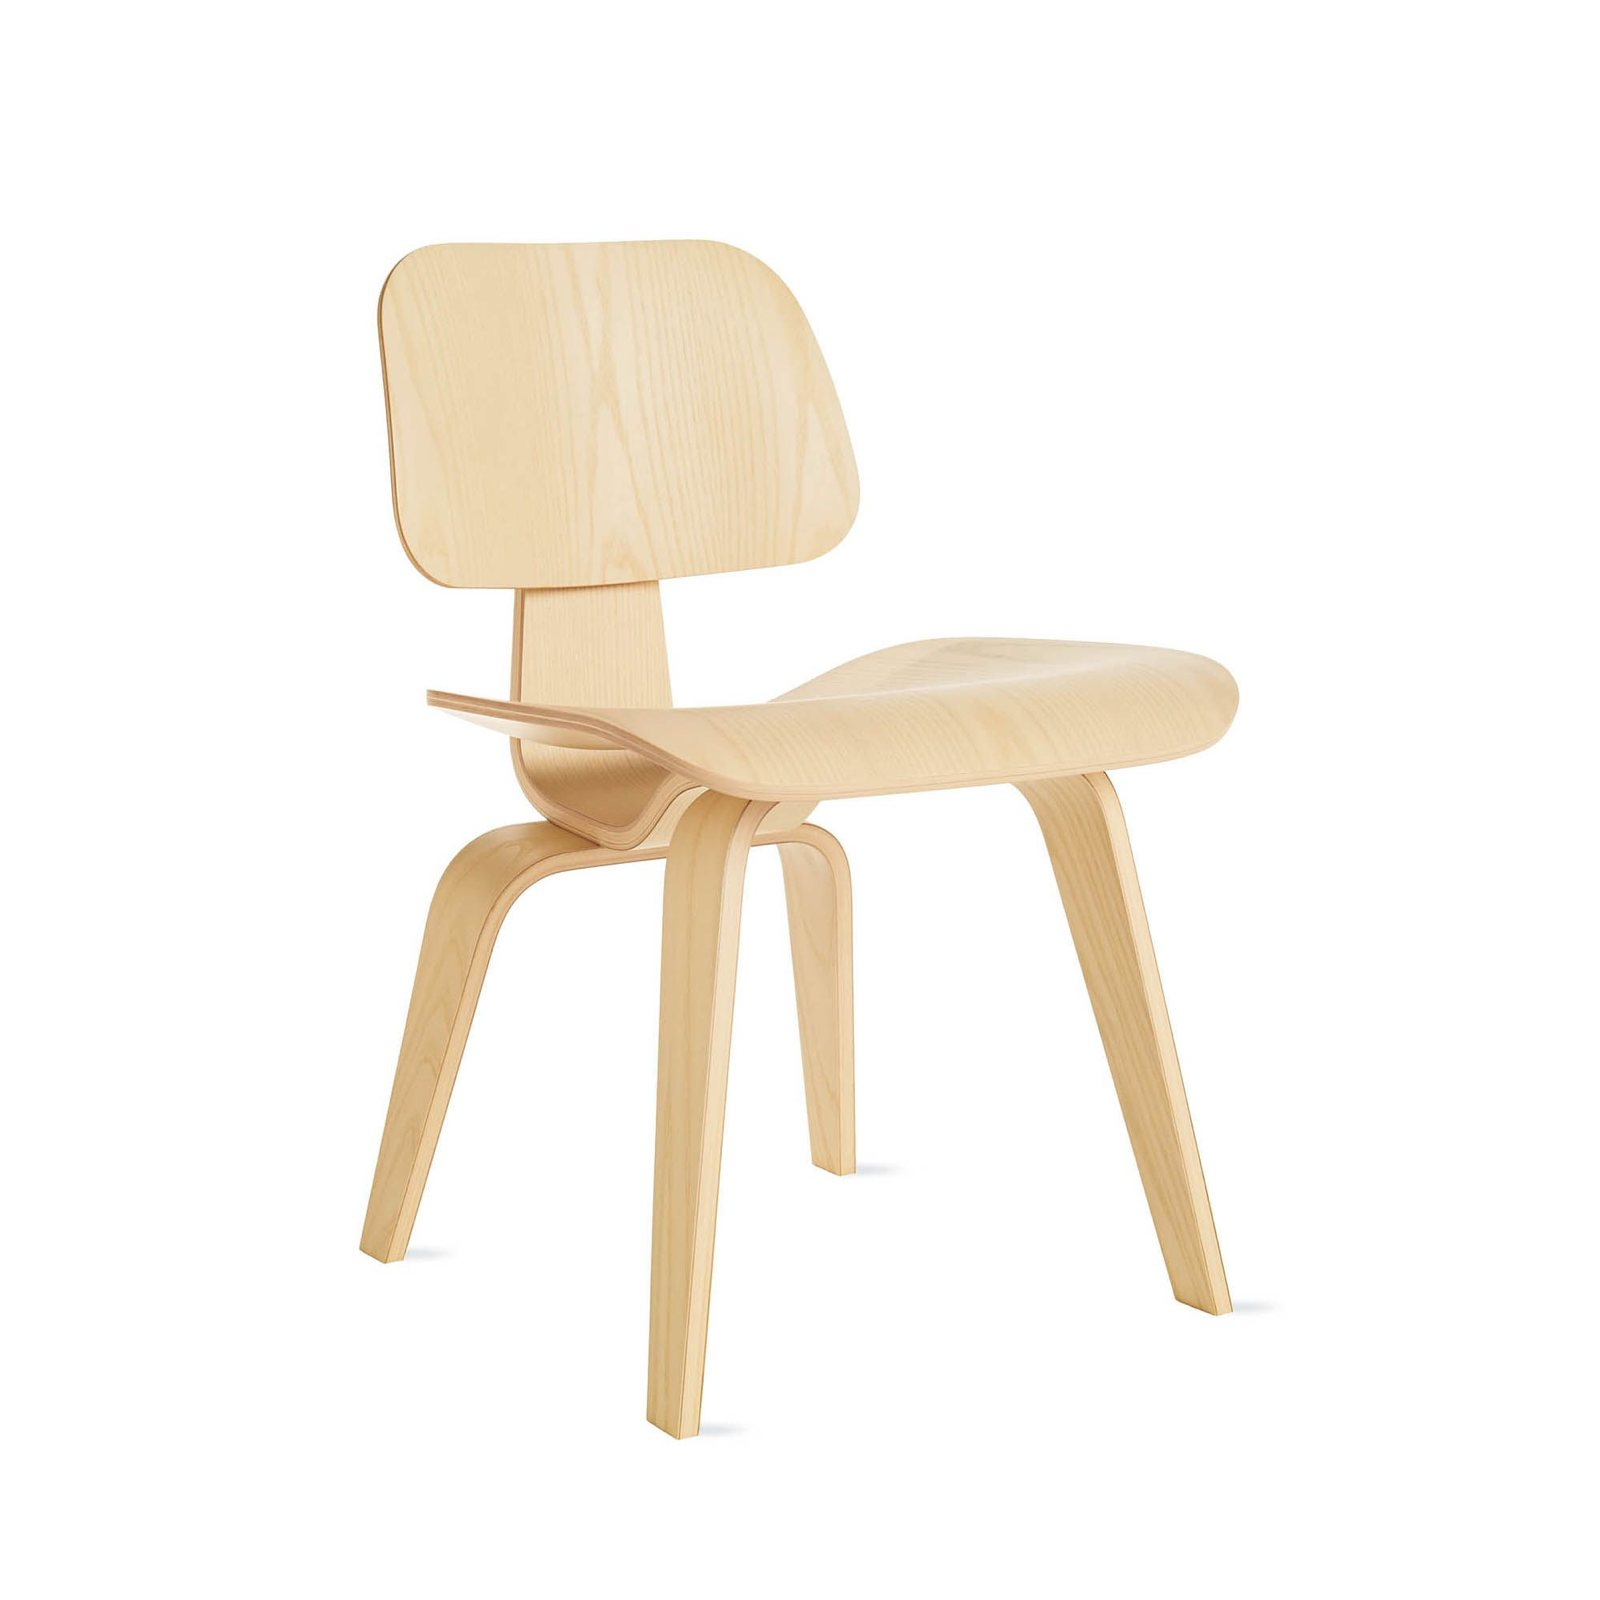 Eames Molded Plywood Dining Chair Wood Base by Charles & Ray Eames